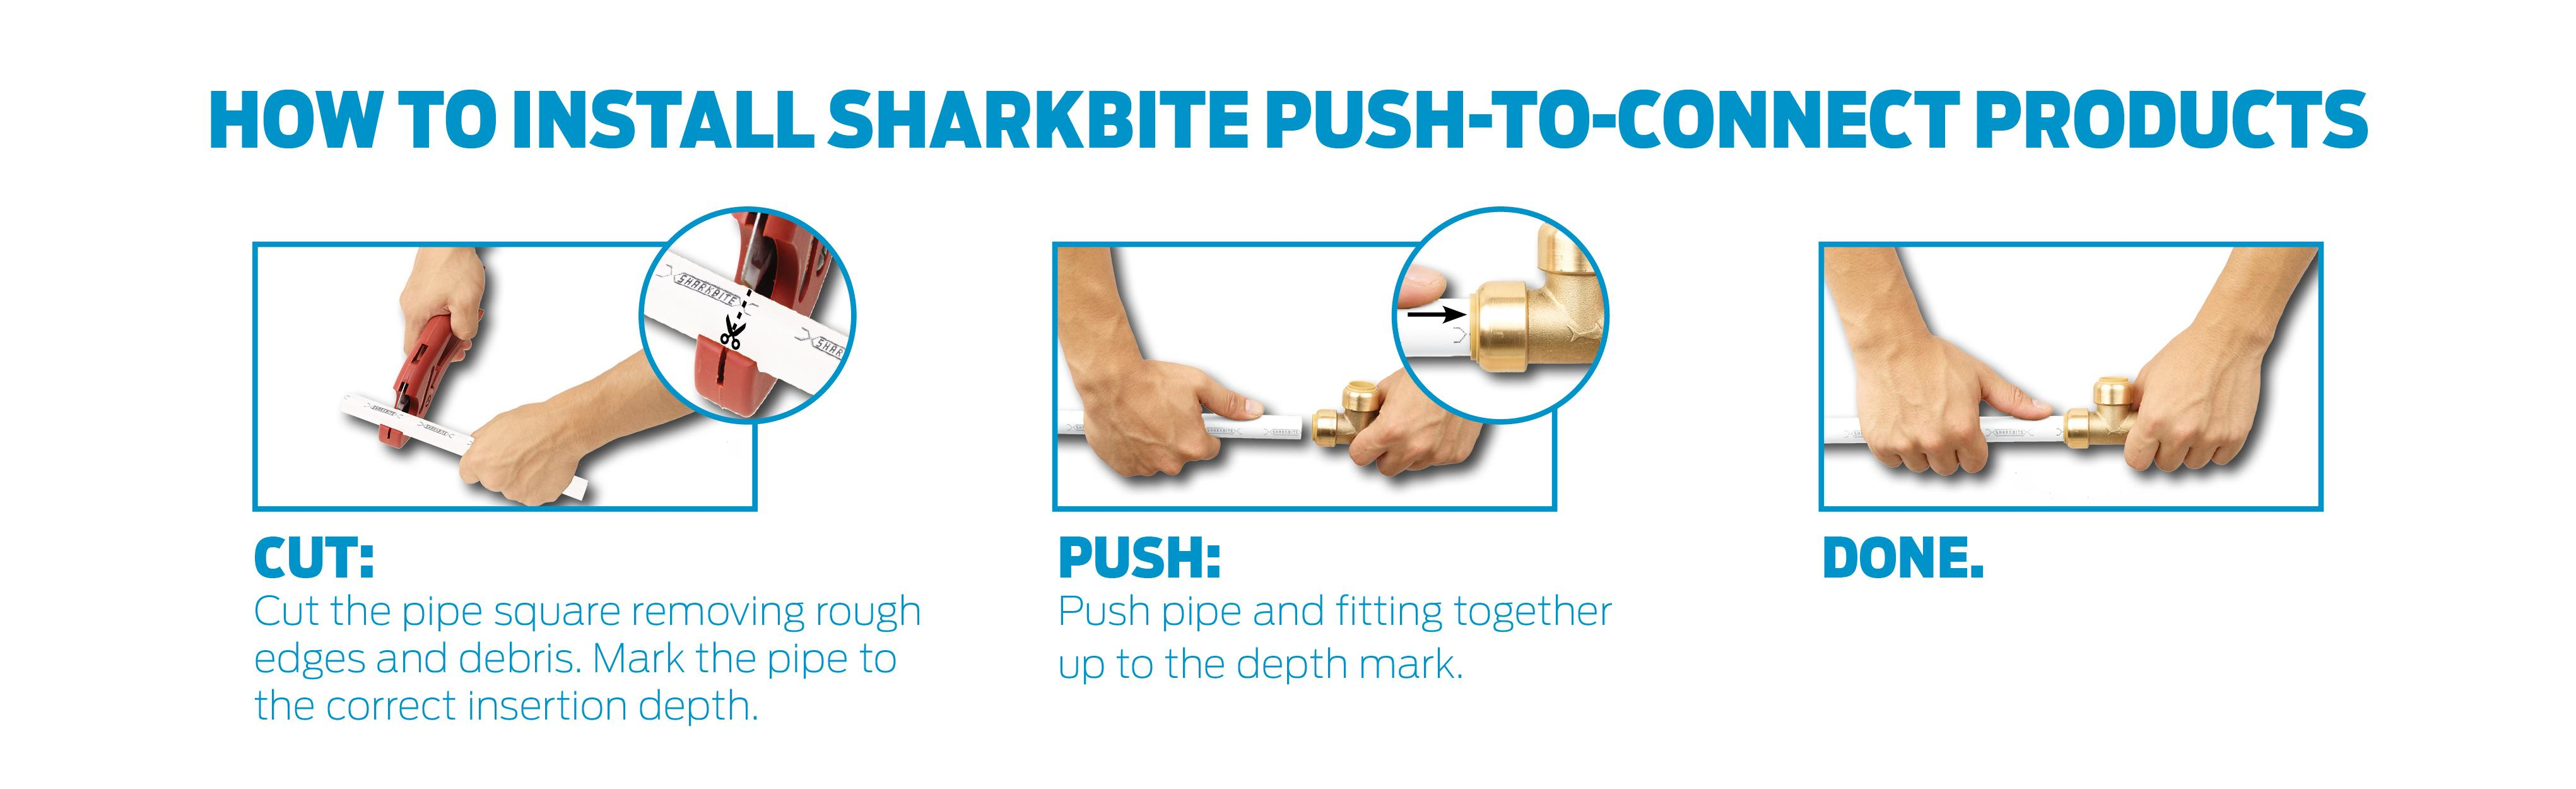 plumbing connect to product tees pex use tee polymer copper bite x more shark for w push